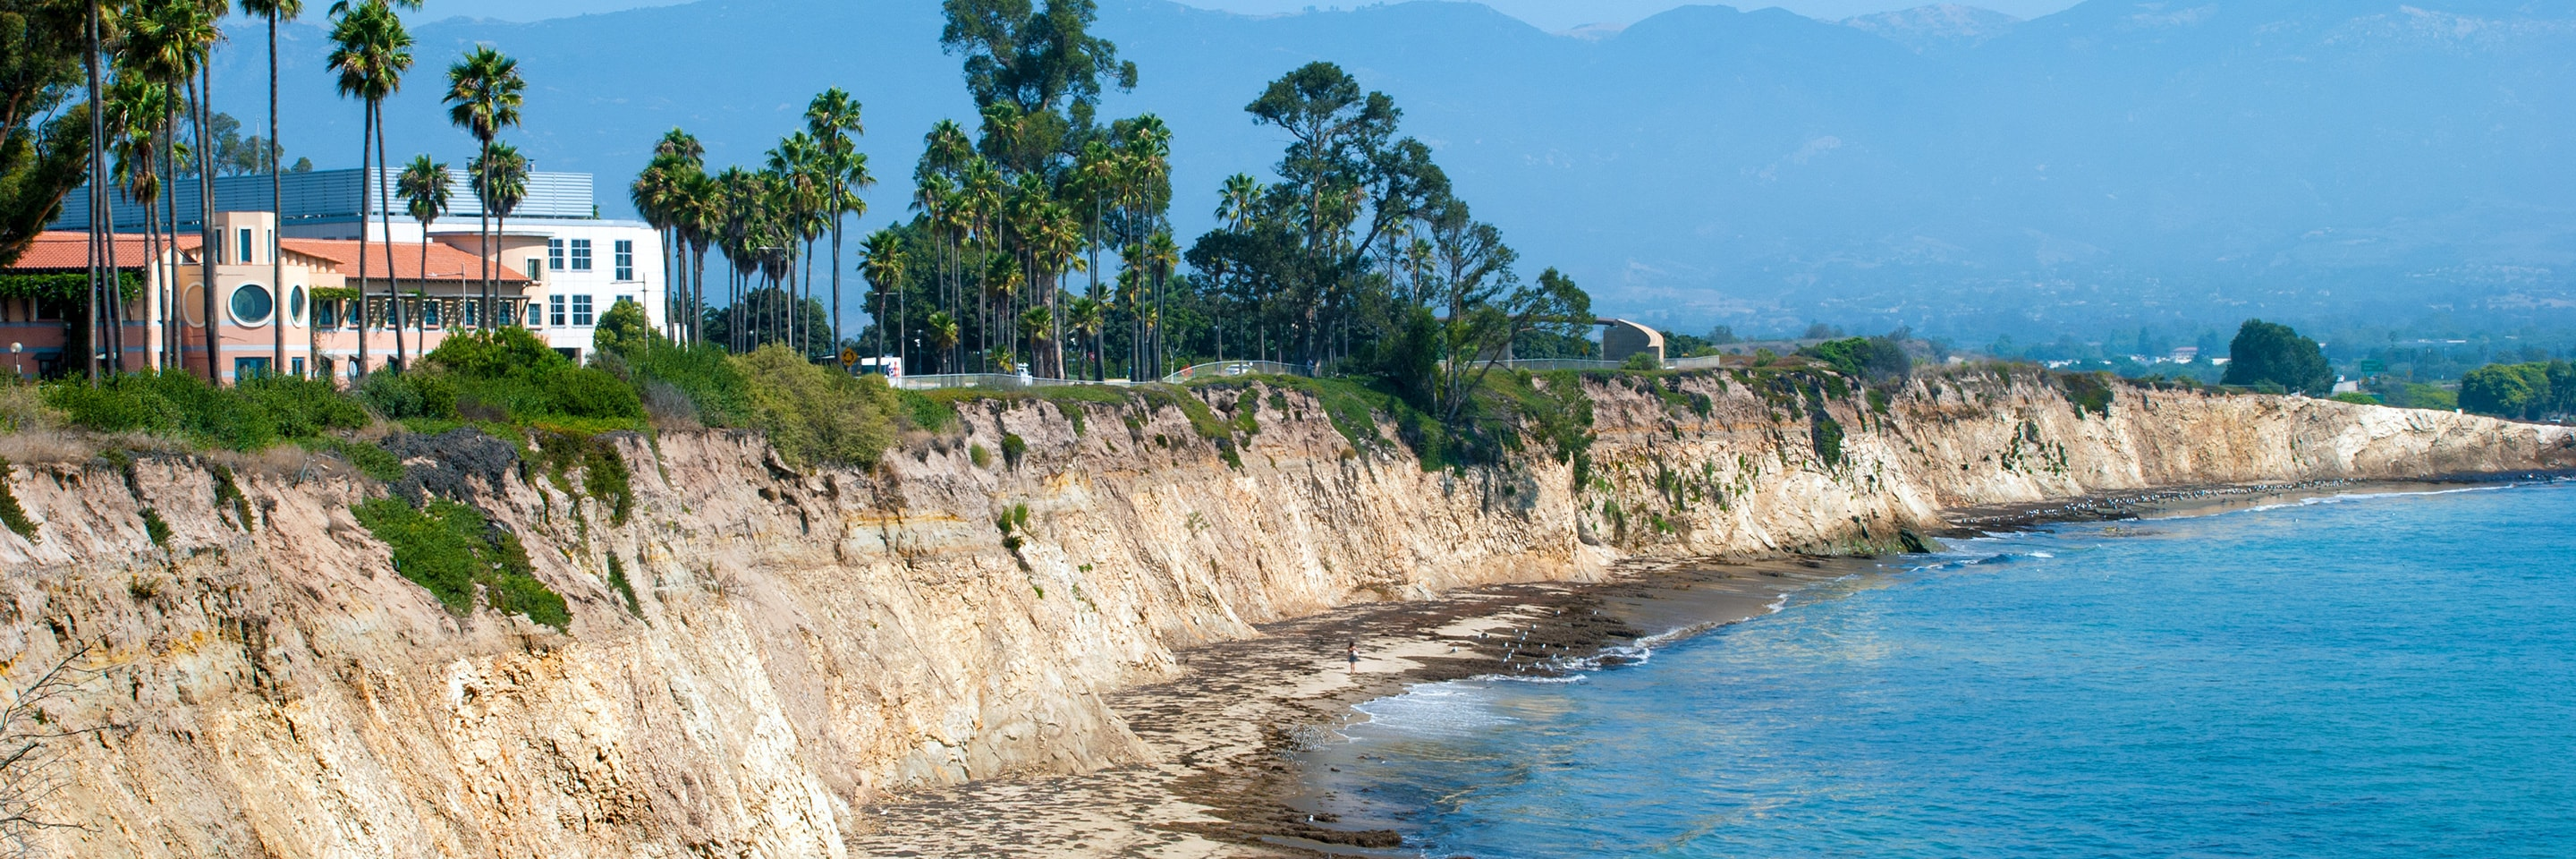 Hotels in Santa Barbara